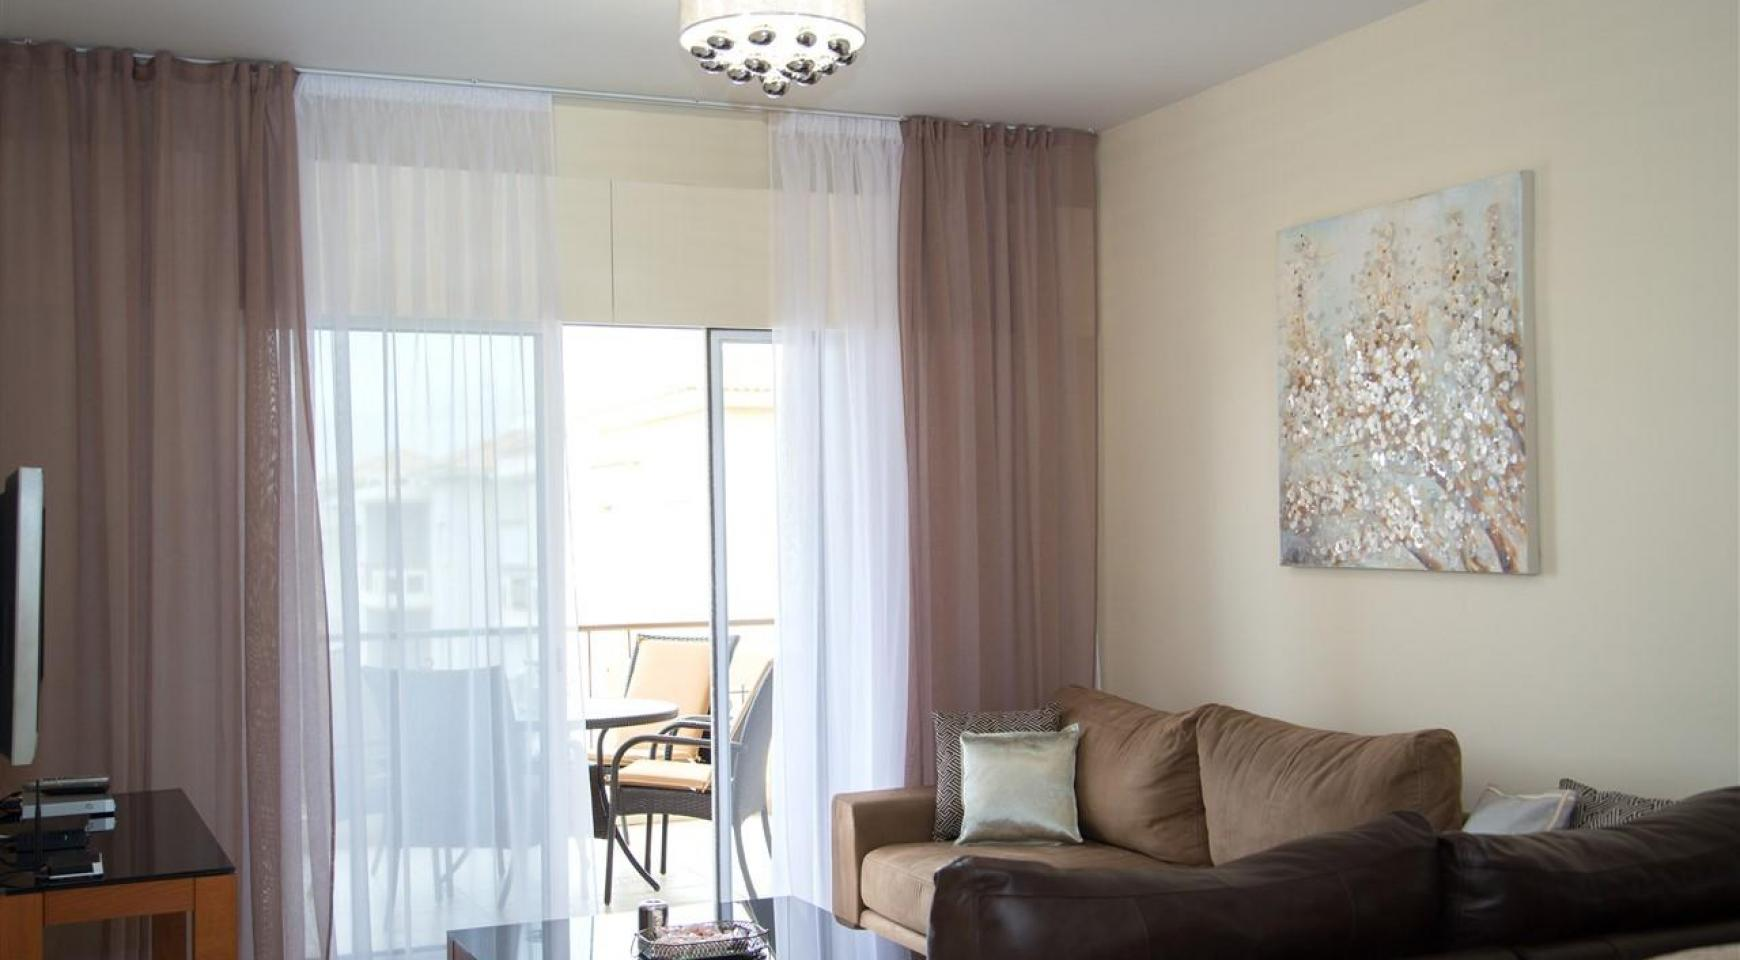 2 Bedroom Apartment in the Complex near the Sea - 2